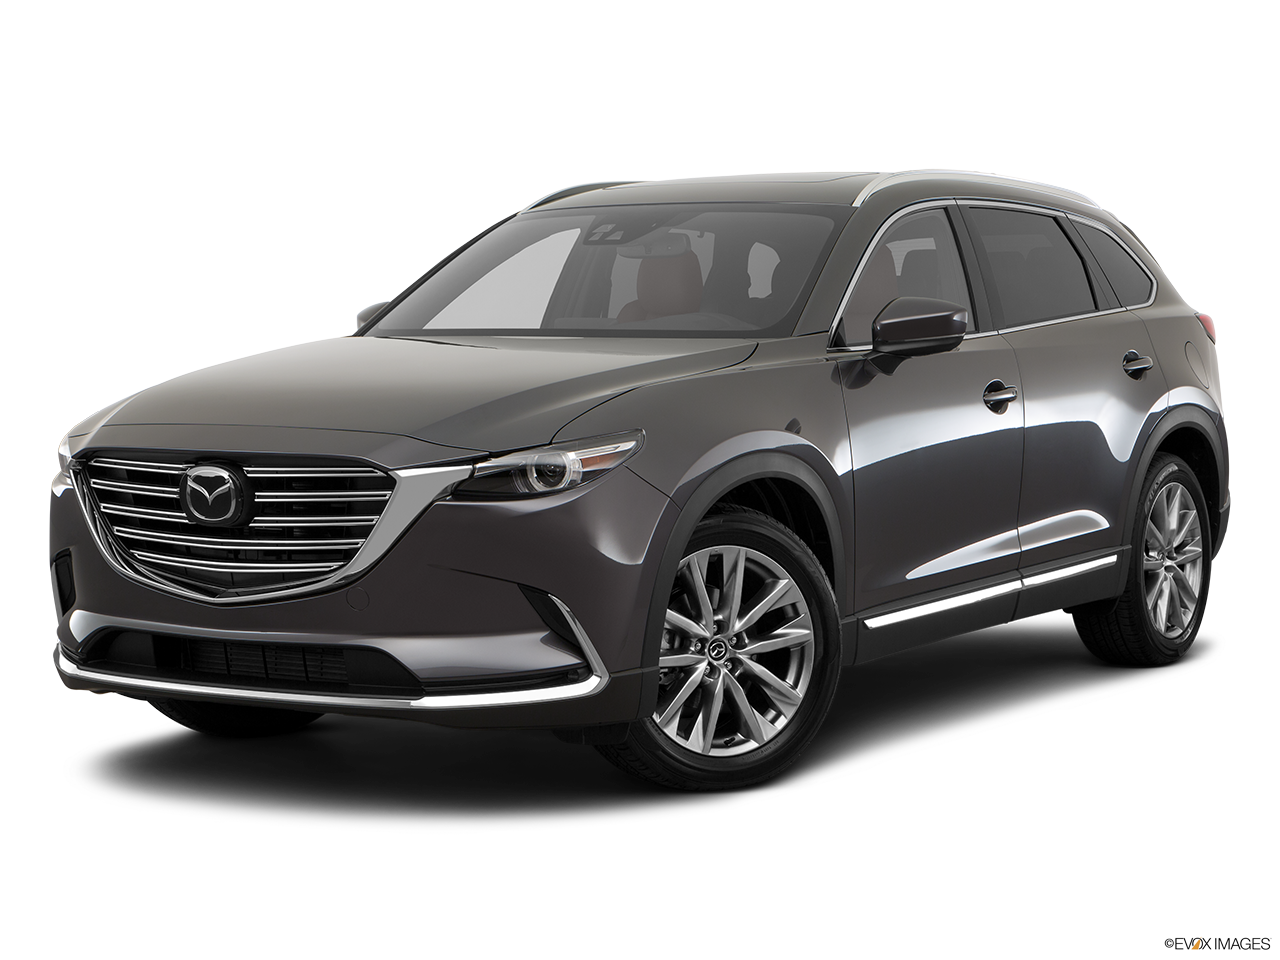 Test Drive A 2016 Mazda CX-9 at Galpin Mazda in Los Angeles